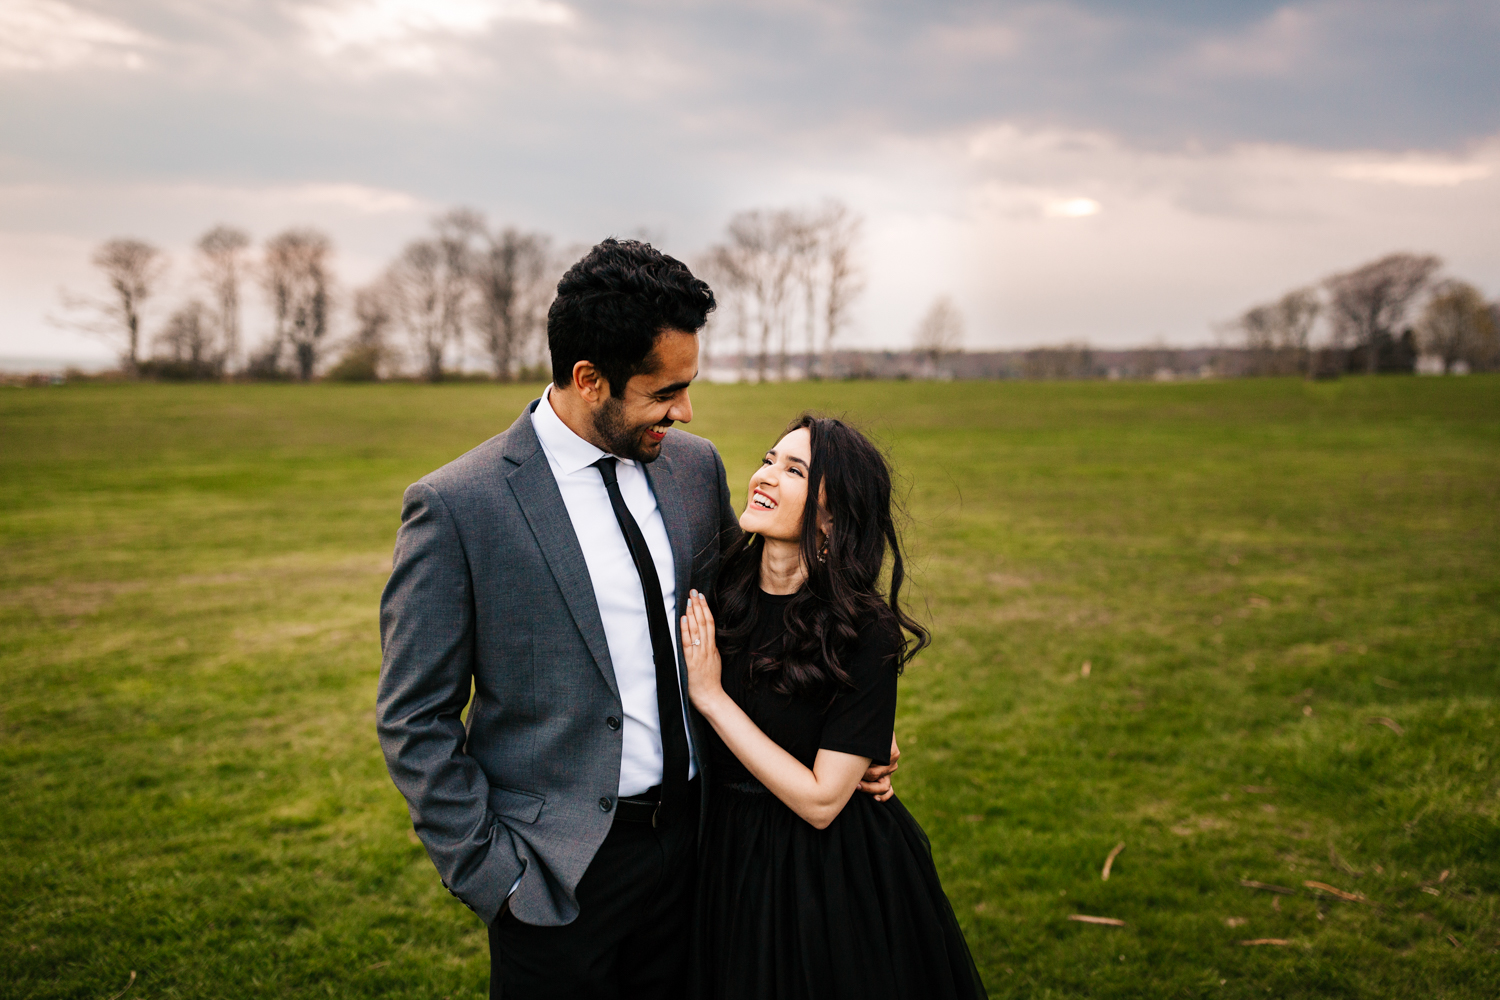 harkness-memorial-state-park-engagement-photoshoot.jpg